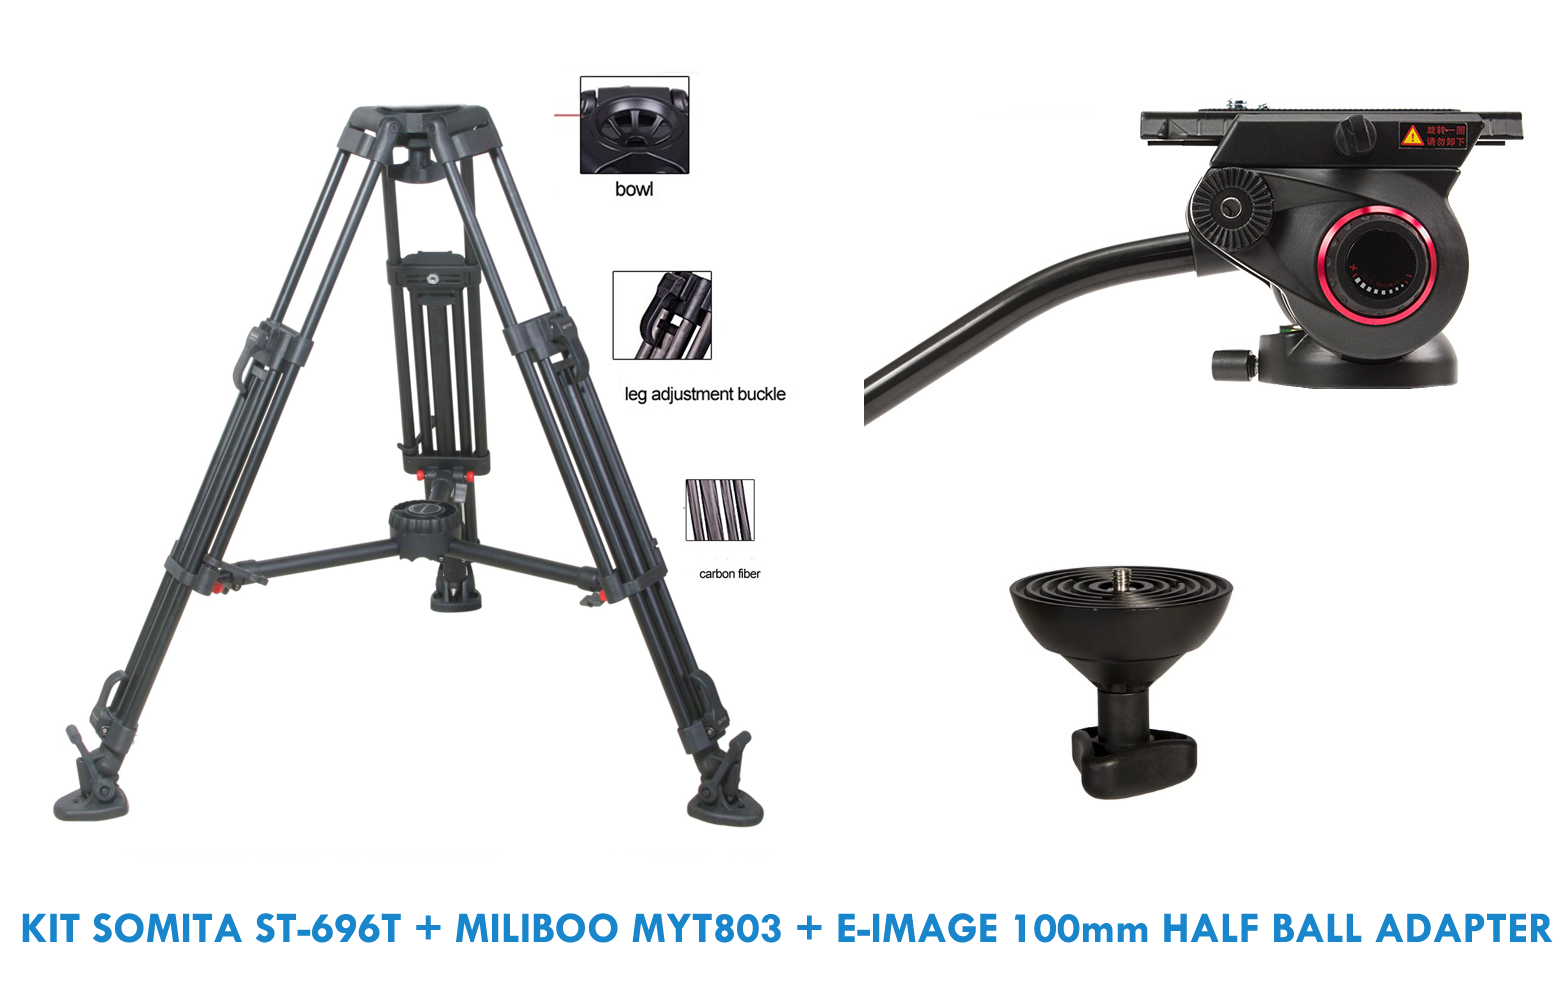 KIT SOMITA ST-696T + MILIBOO MYT803 + E-IMAGE 100mm HALF BALL ADAPTER